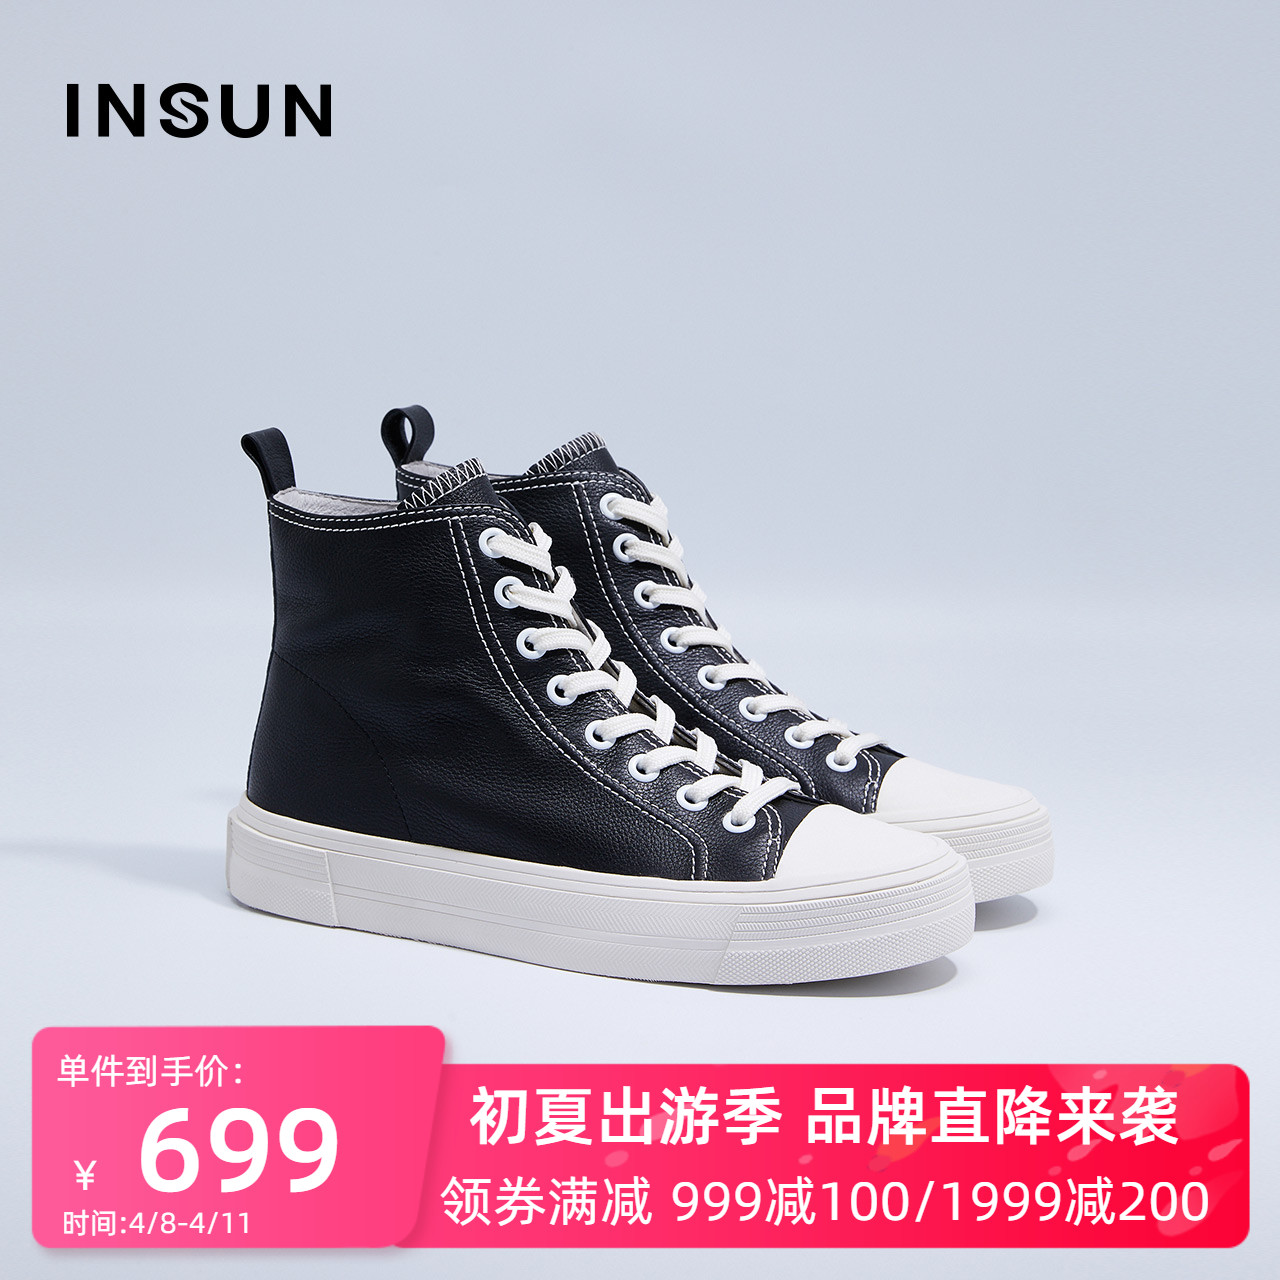 New fashion leather leather casual Korean flat sole high top shoes for women